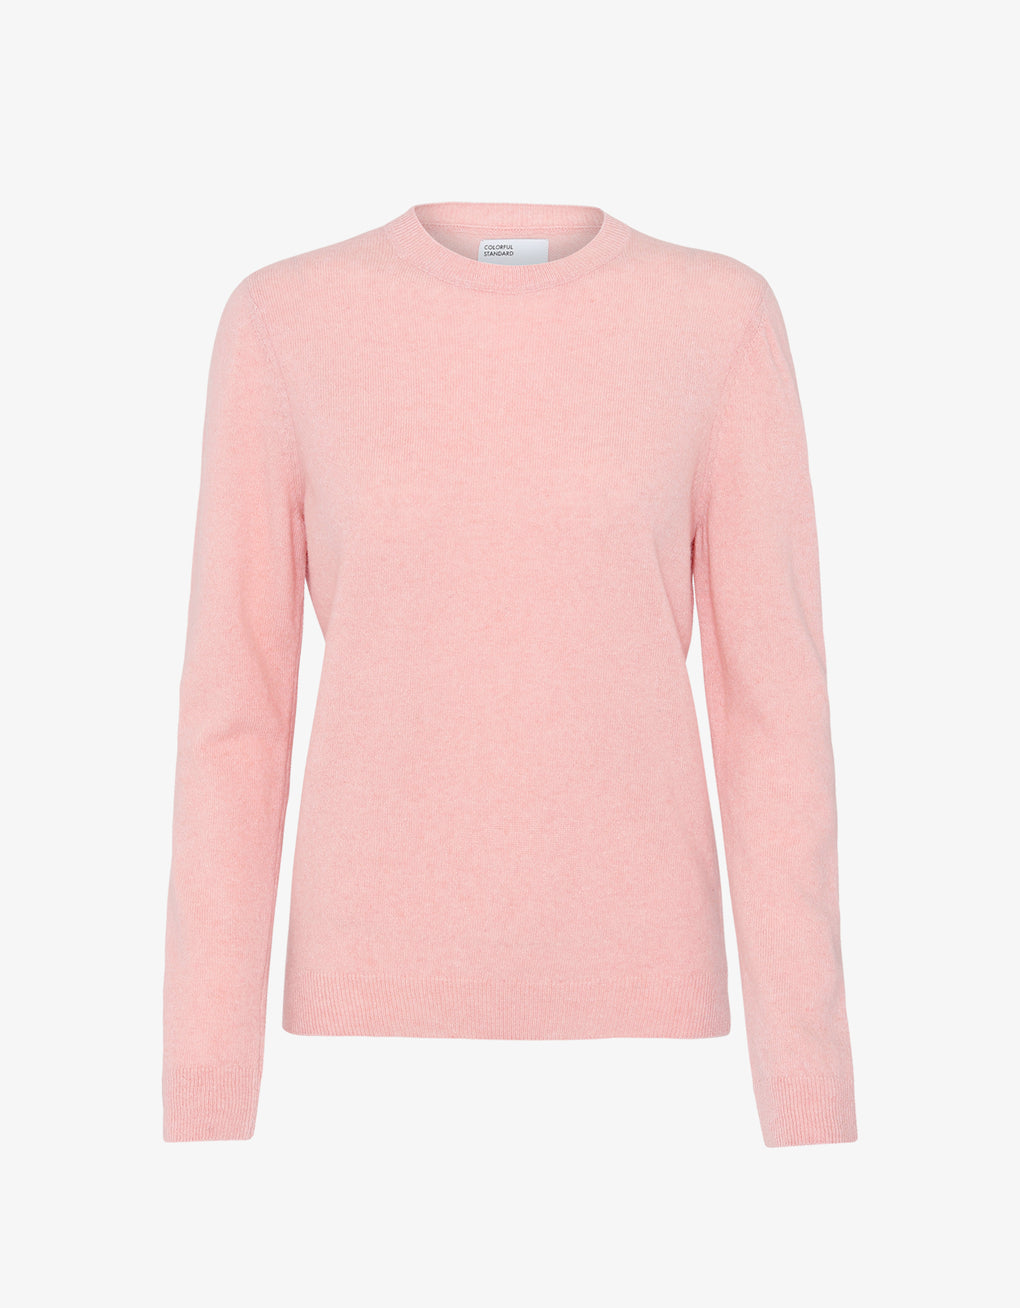 Colorful Standard Women Merino Wool Crew Women Merino Crewneck Faded Pink